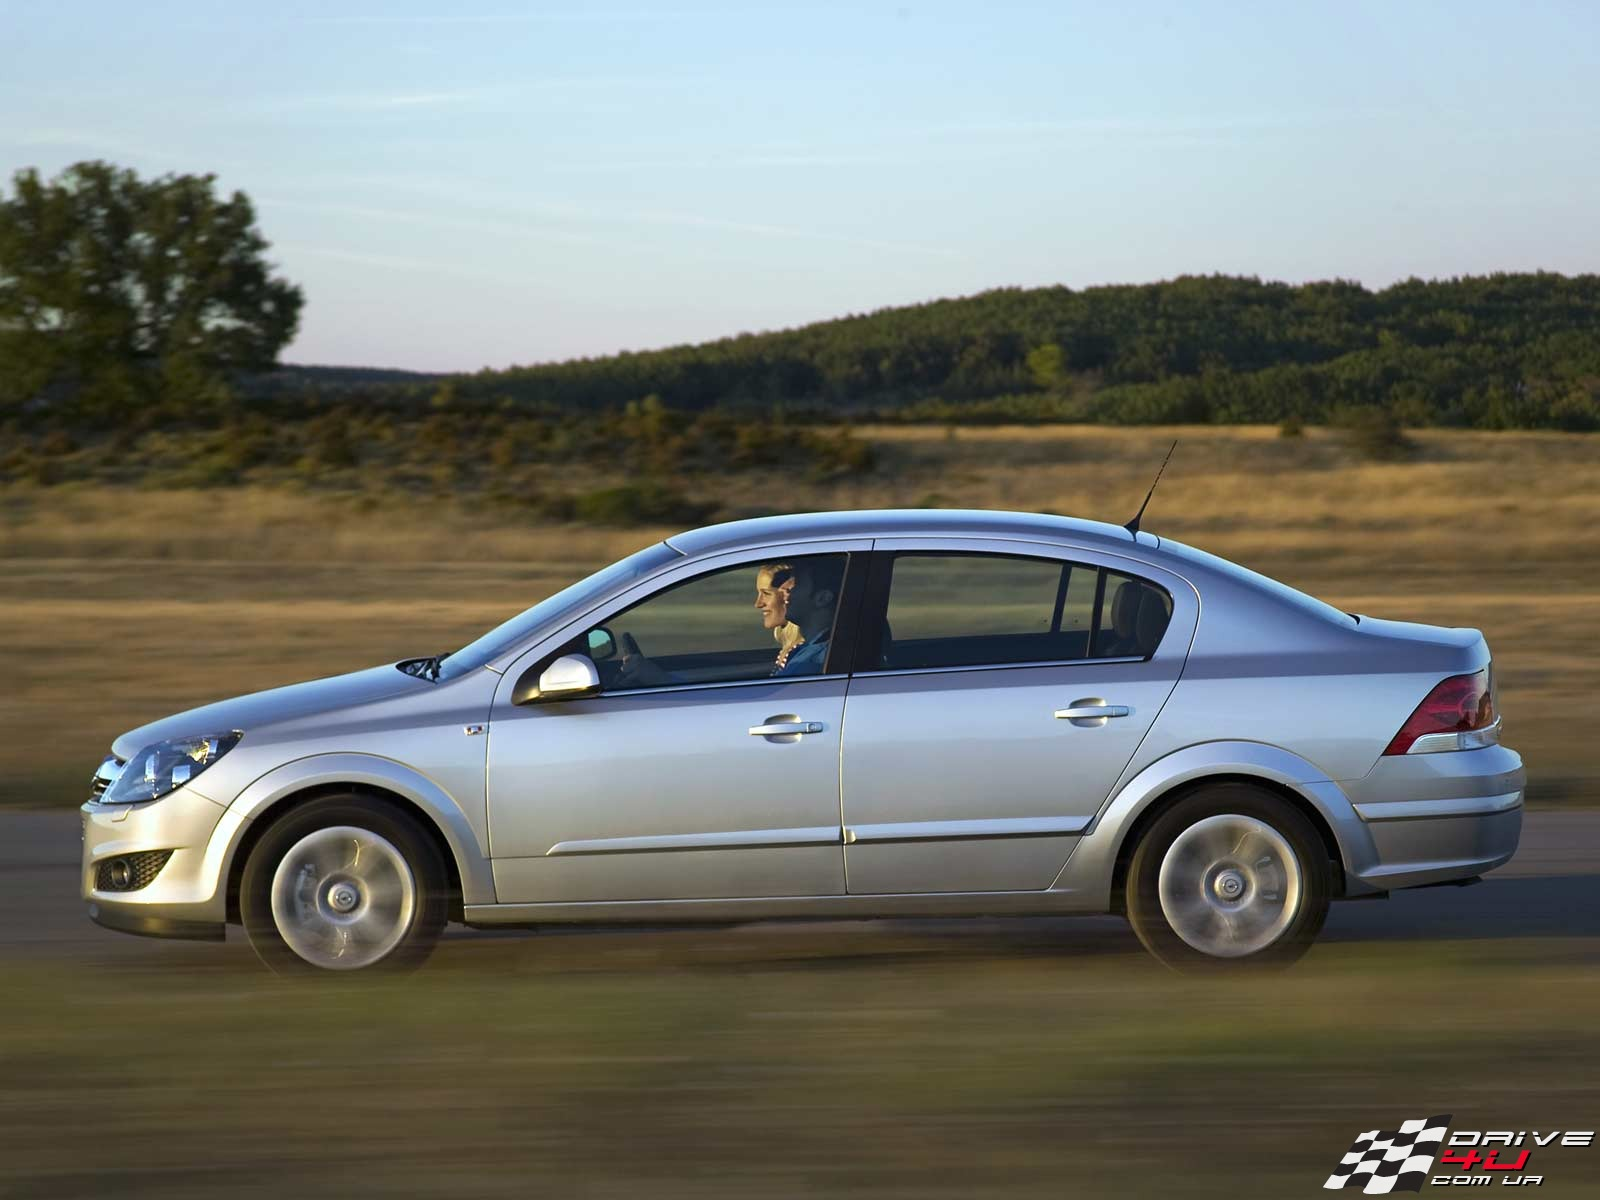 opel astra h sedan photos news reviews specs car listings. Black Bedroom Furniture Sets. Home Design Ideas